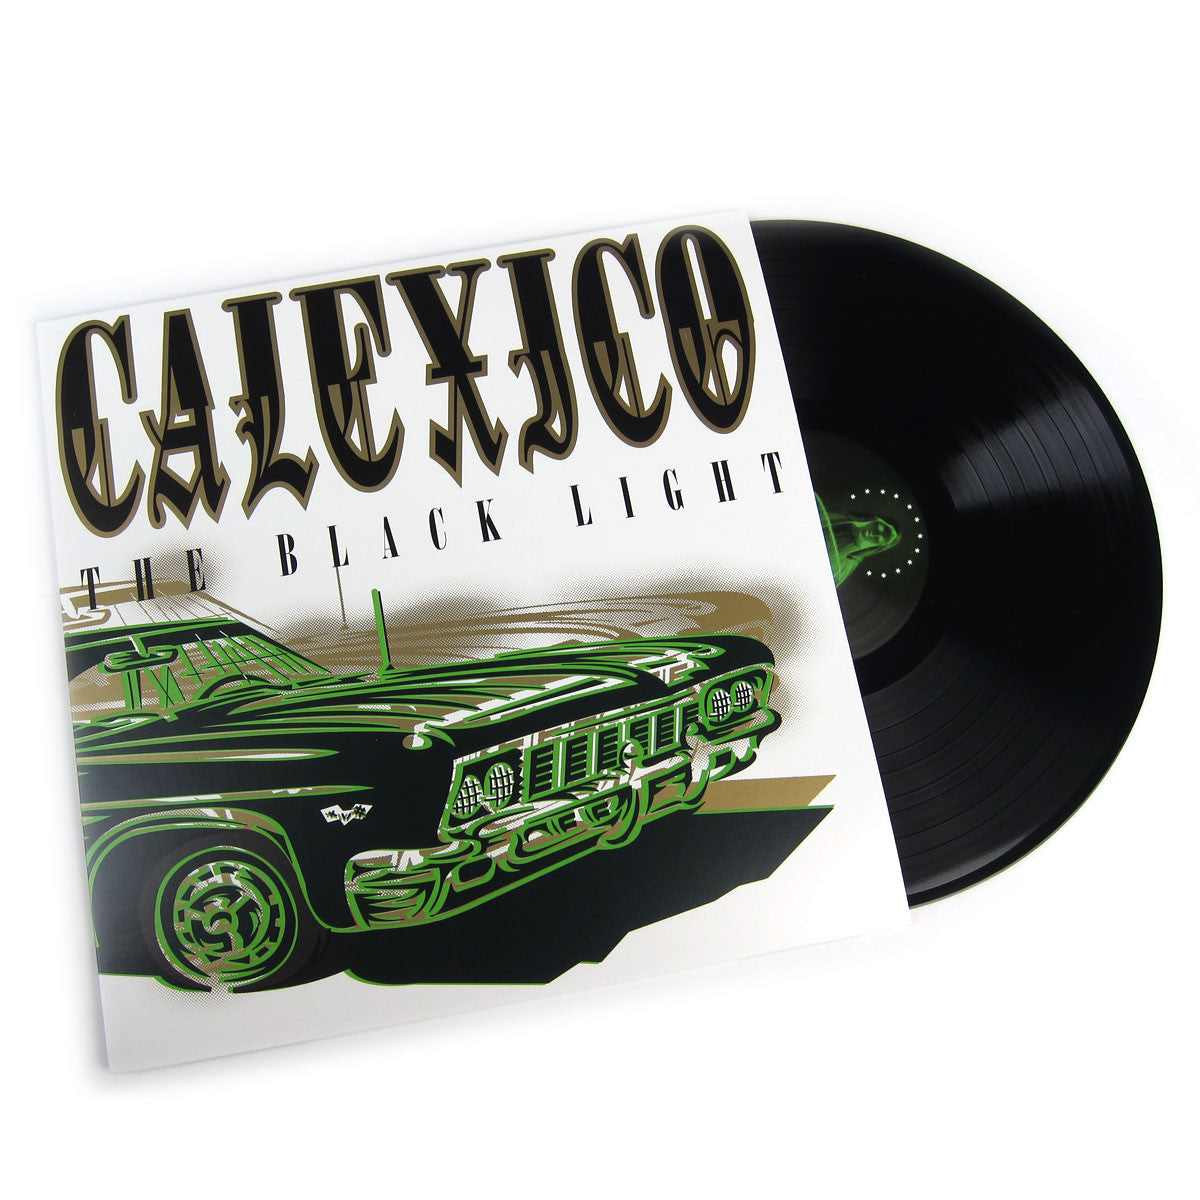 Calexico: The Black Light Vinyl LP